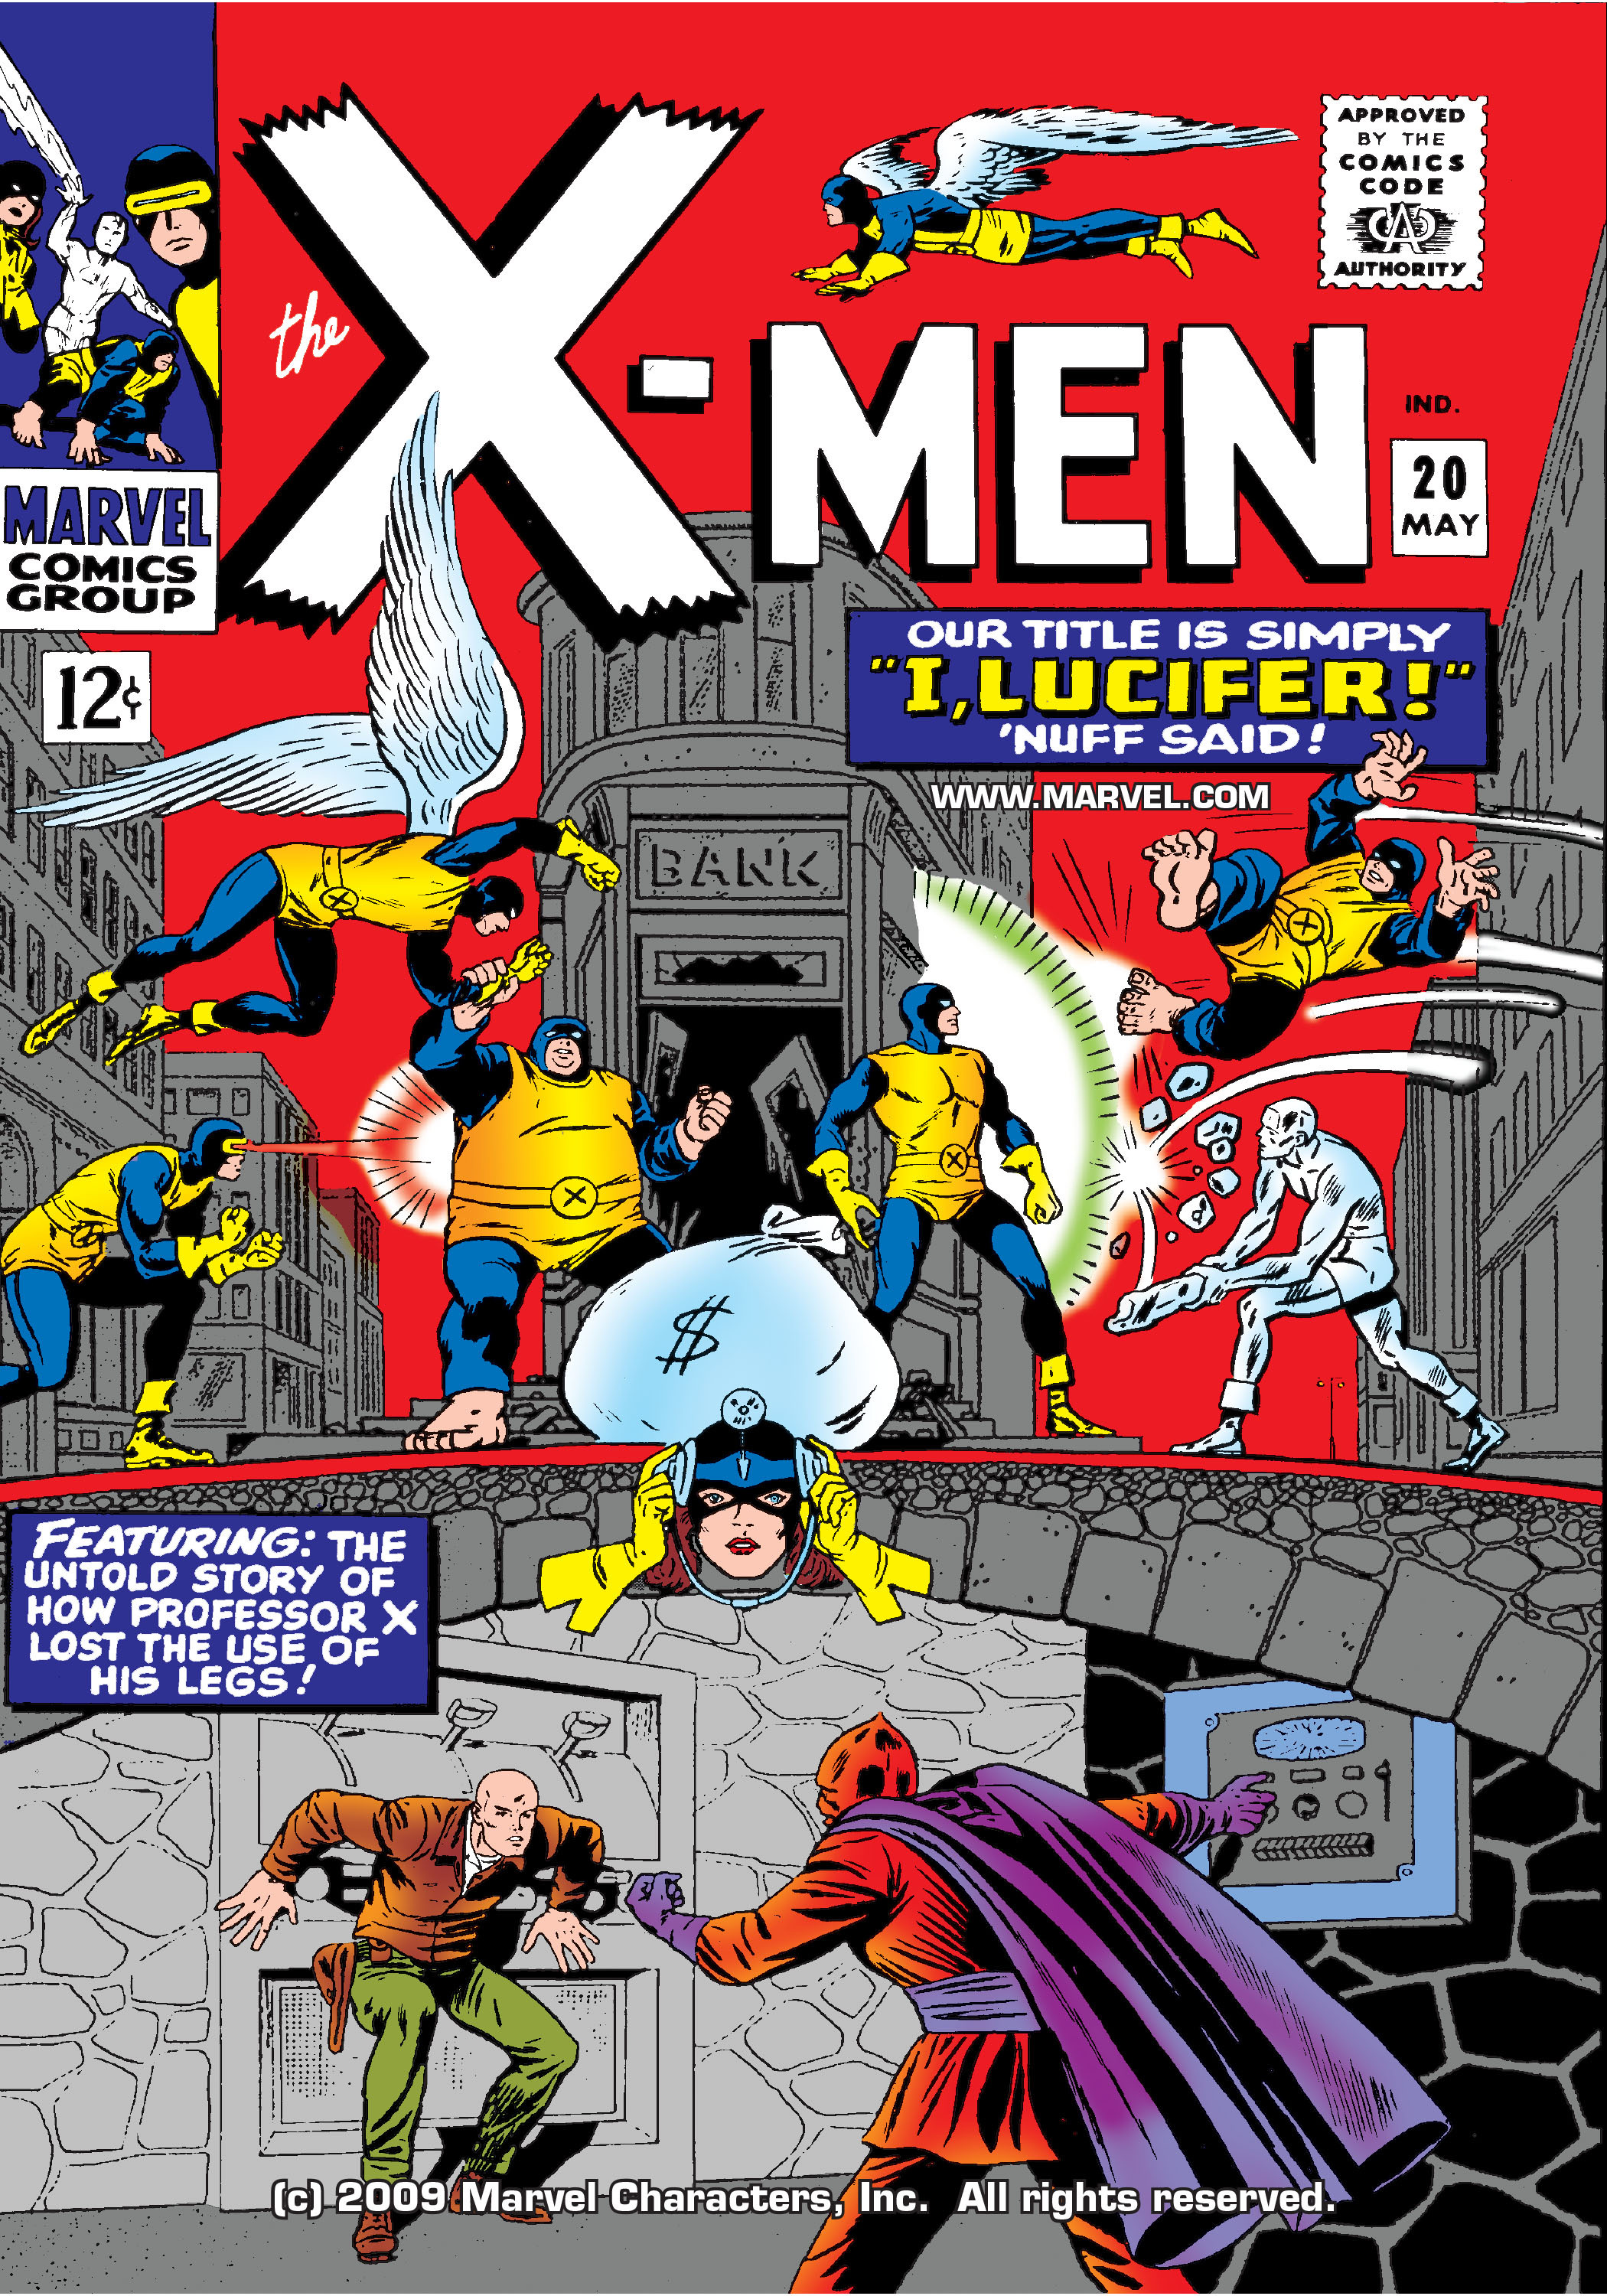 Read online Uncanny X-Men (1963) comic -  Issue #20 - 1